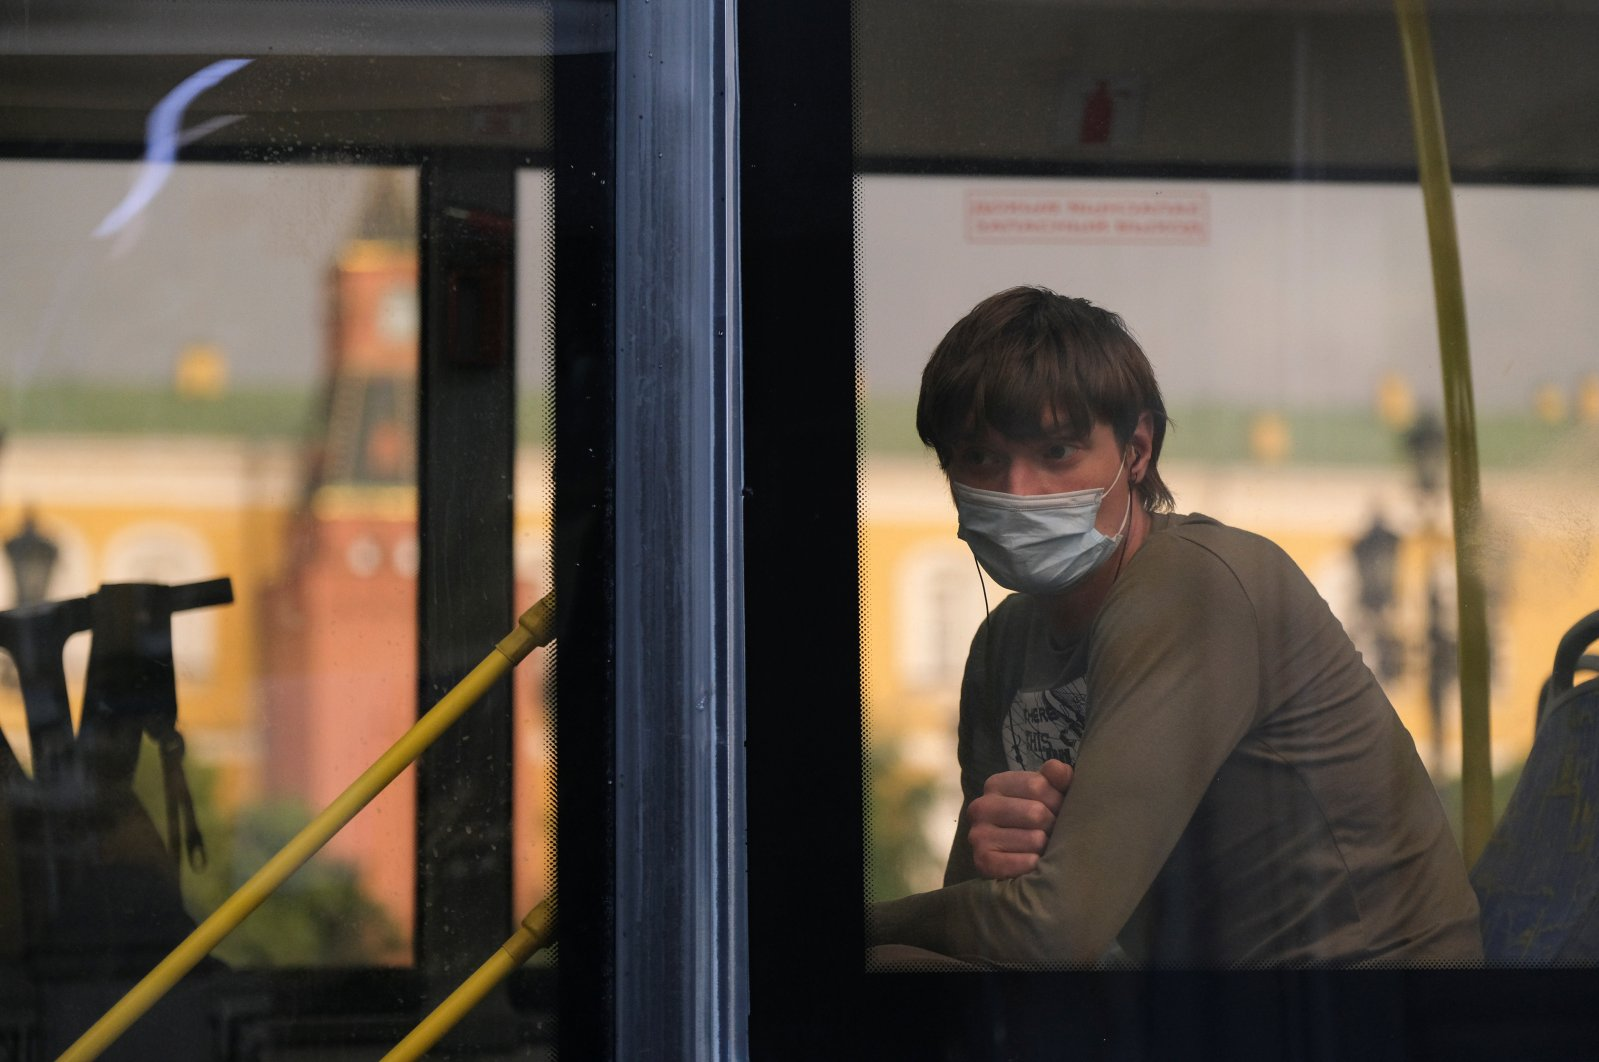 A passenger wearing a protective face mask as a preventive measure against COVID-19 looks through a bus window in Moscow, Russia, June 19, 2020. (REUTERS Photo)